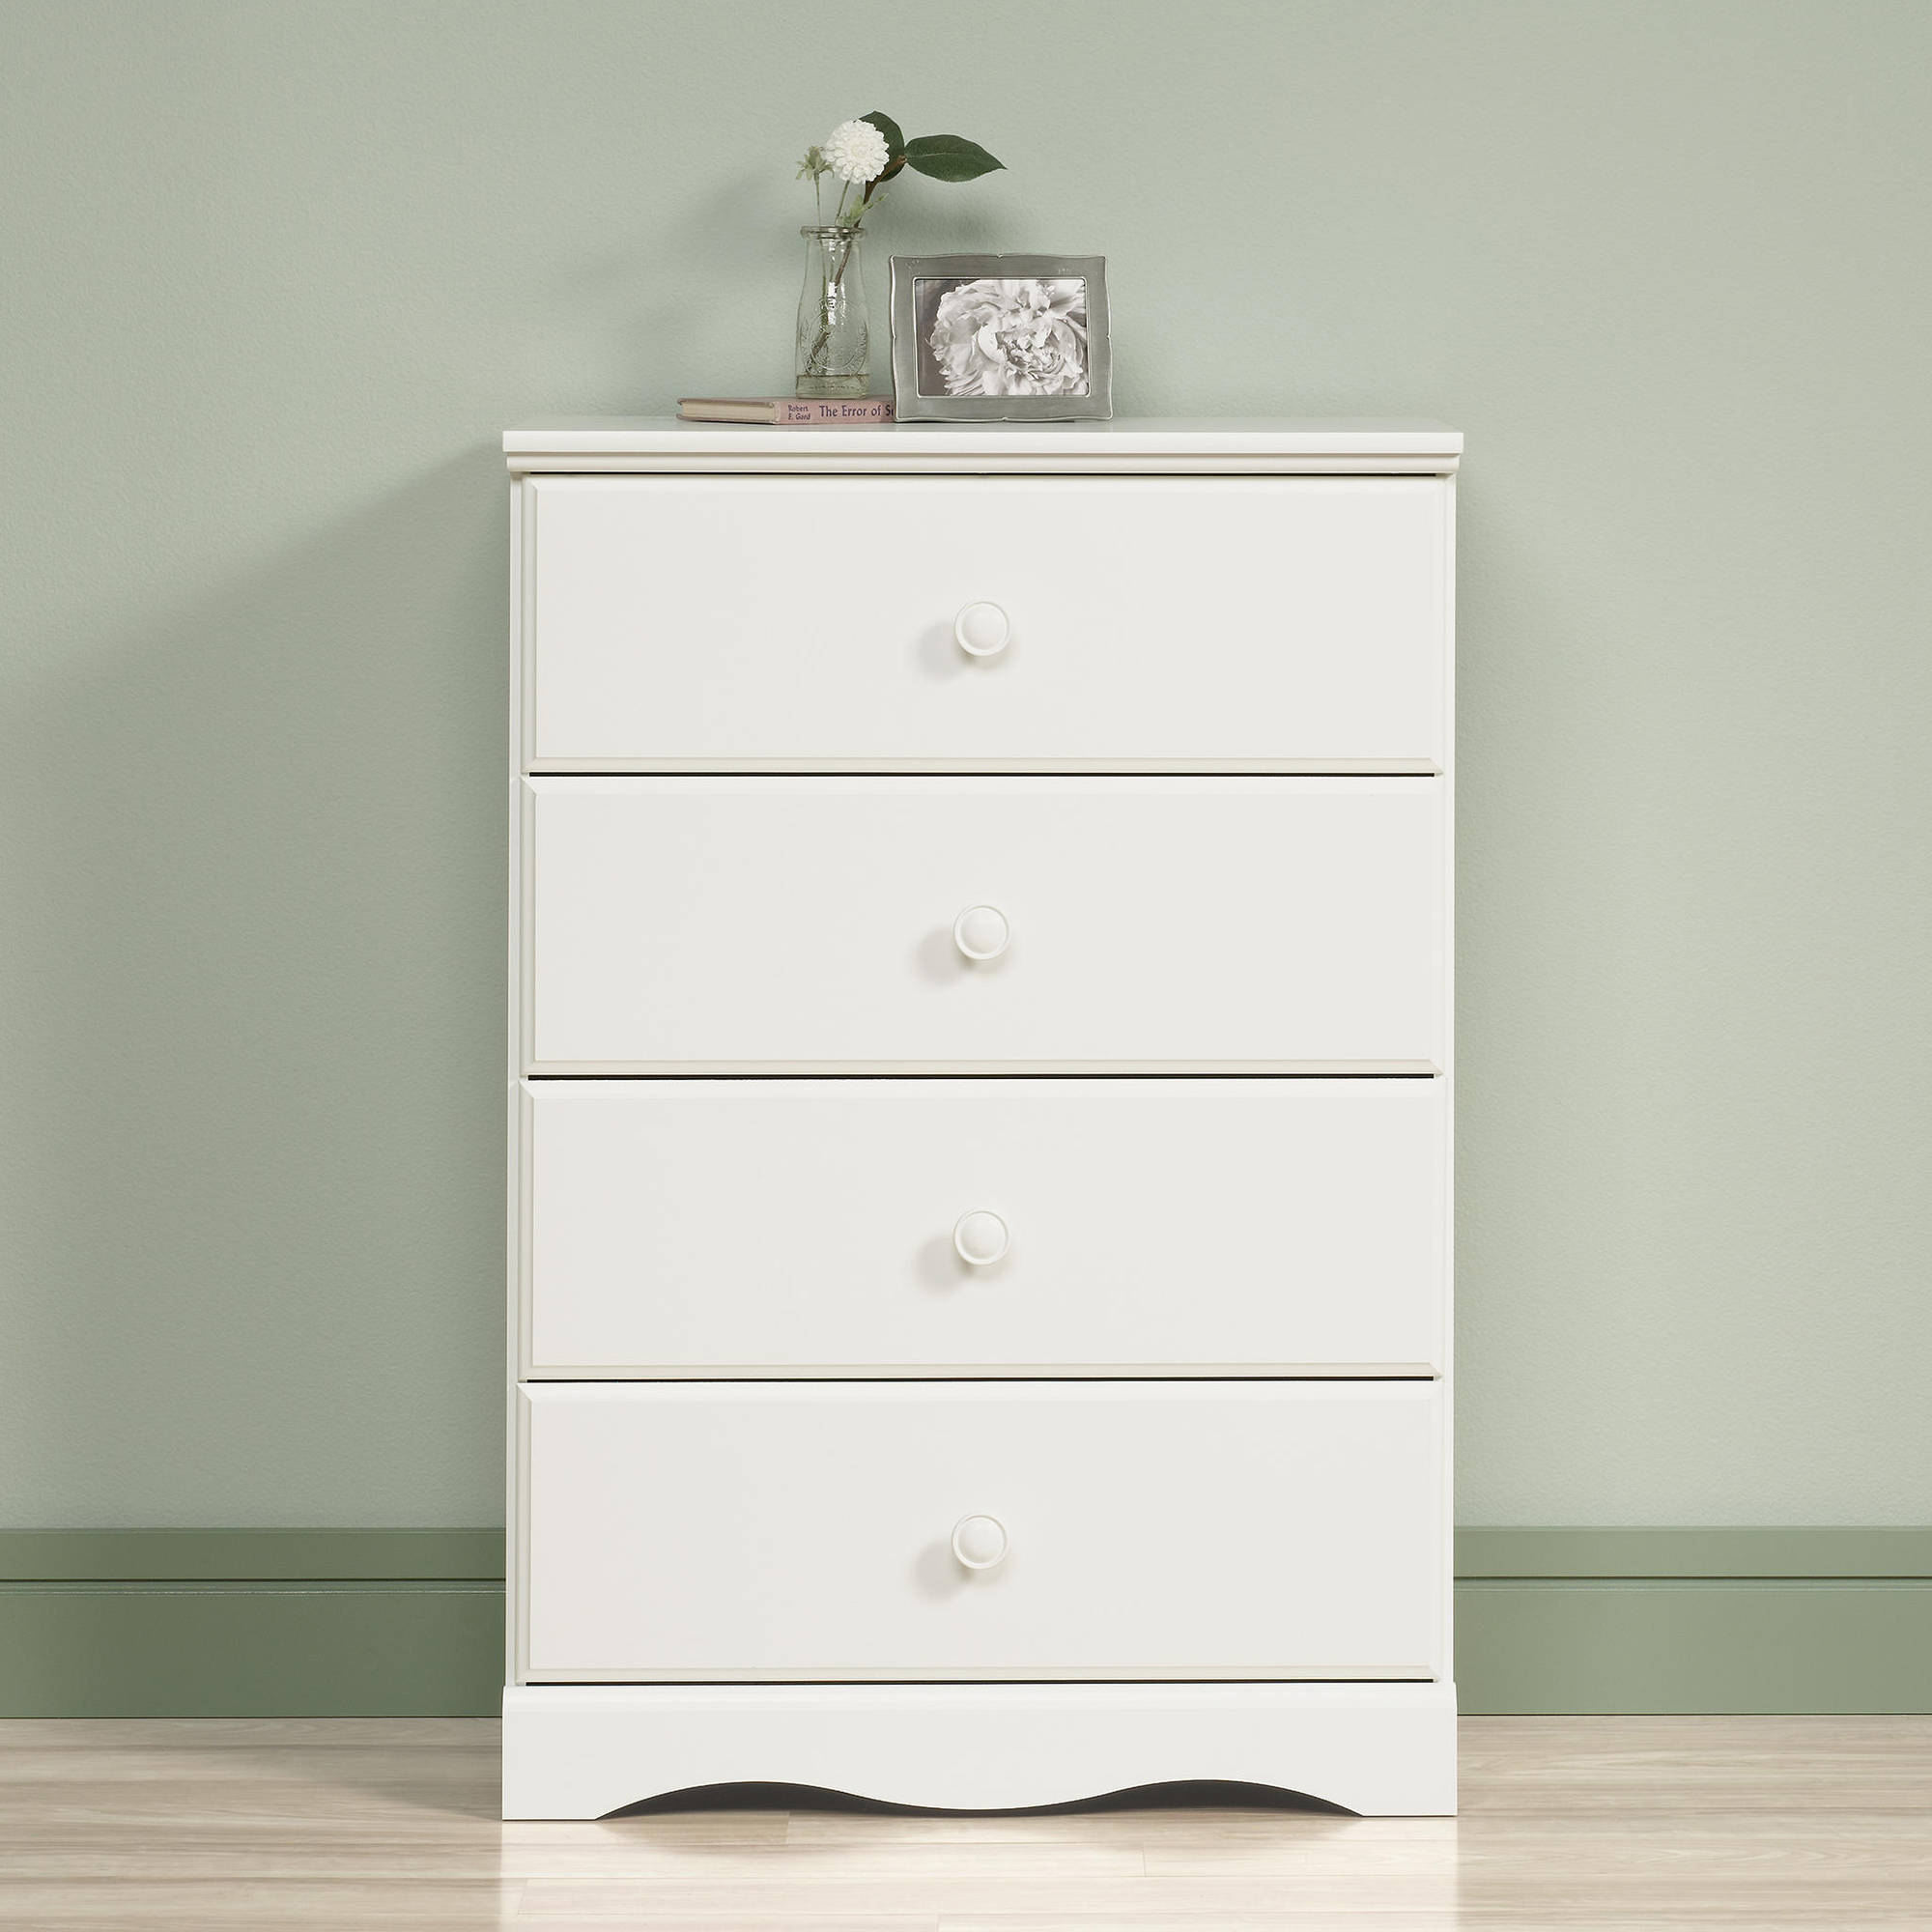 Sauder Storybook 4 Drawer Dresser Multiple Colors Walmartcom